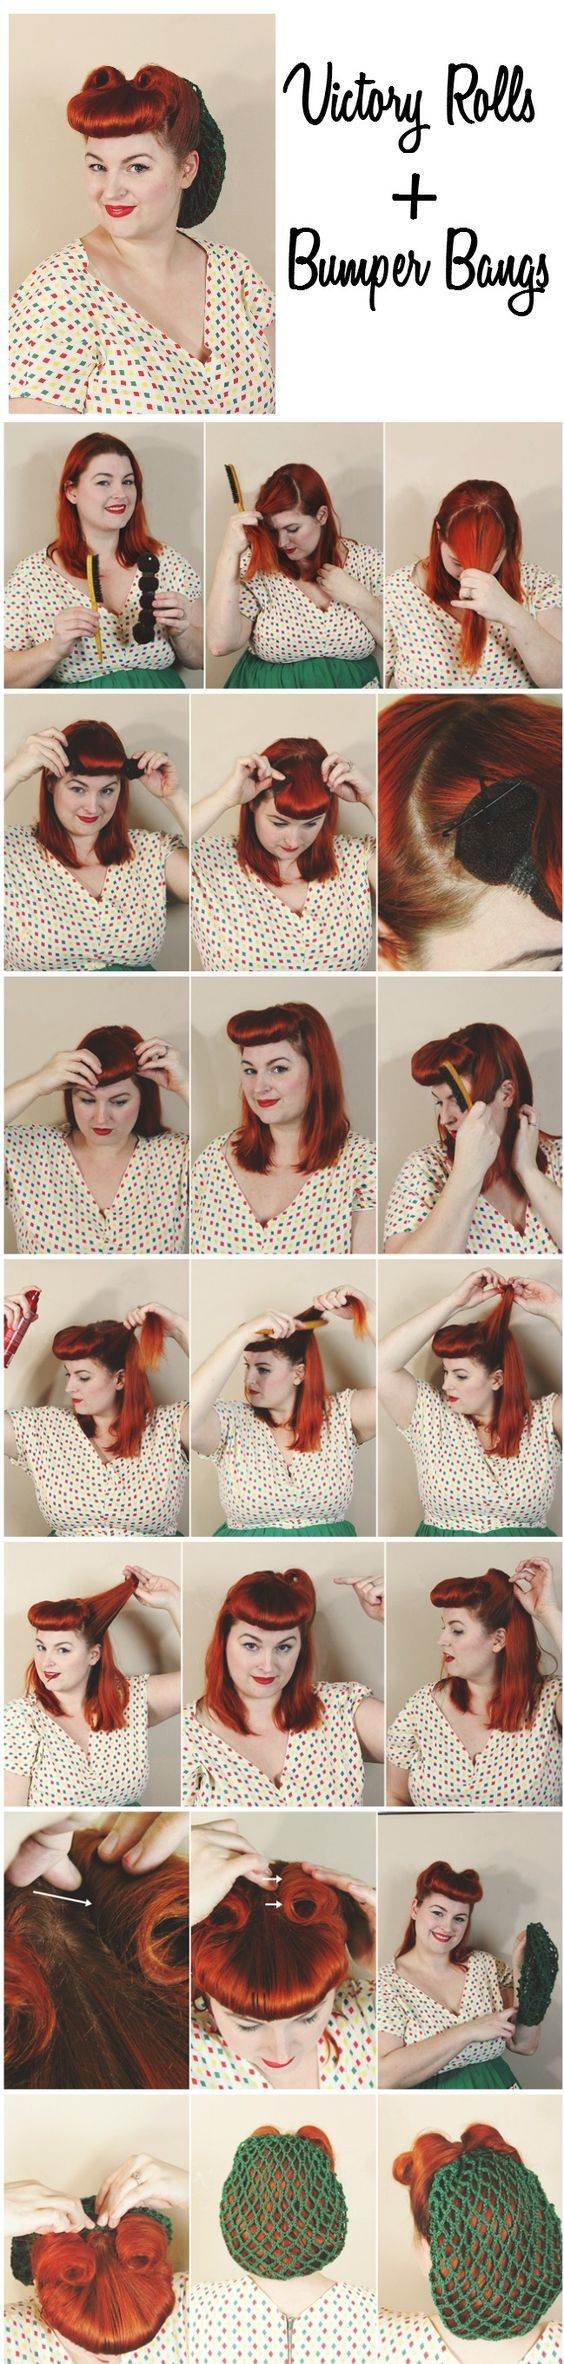 how to style retro pin up hair- victory rolls and faux bumper bangs with a 1940s hair snood net via va-voom vintage